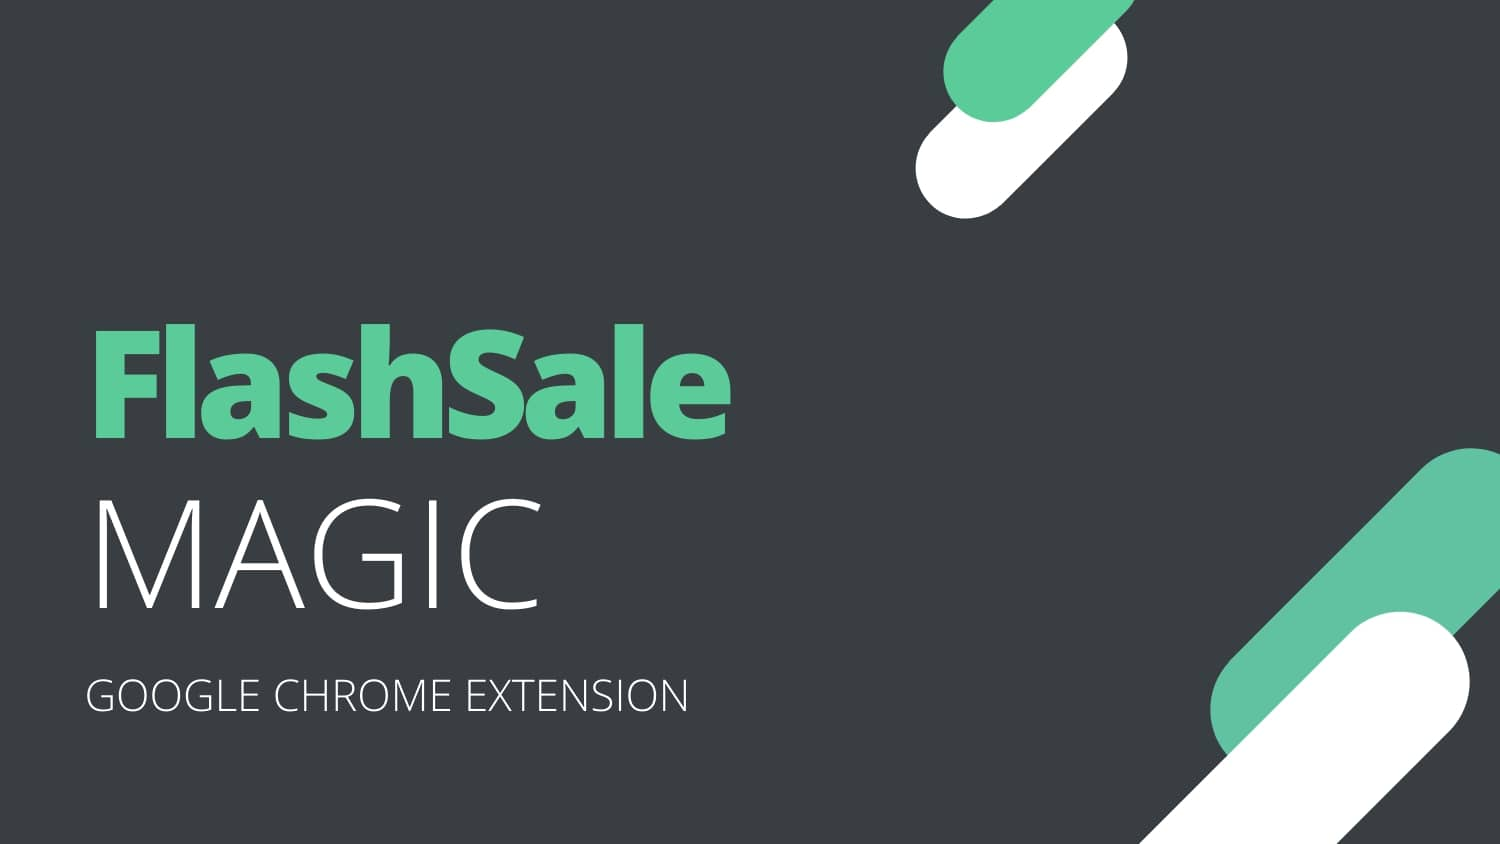 FlashSale Magic Chrome Extension: How It Works?